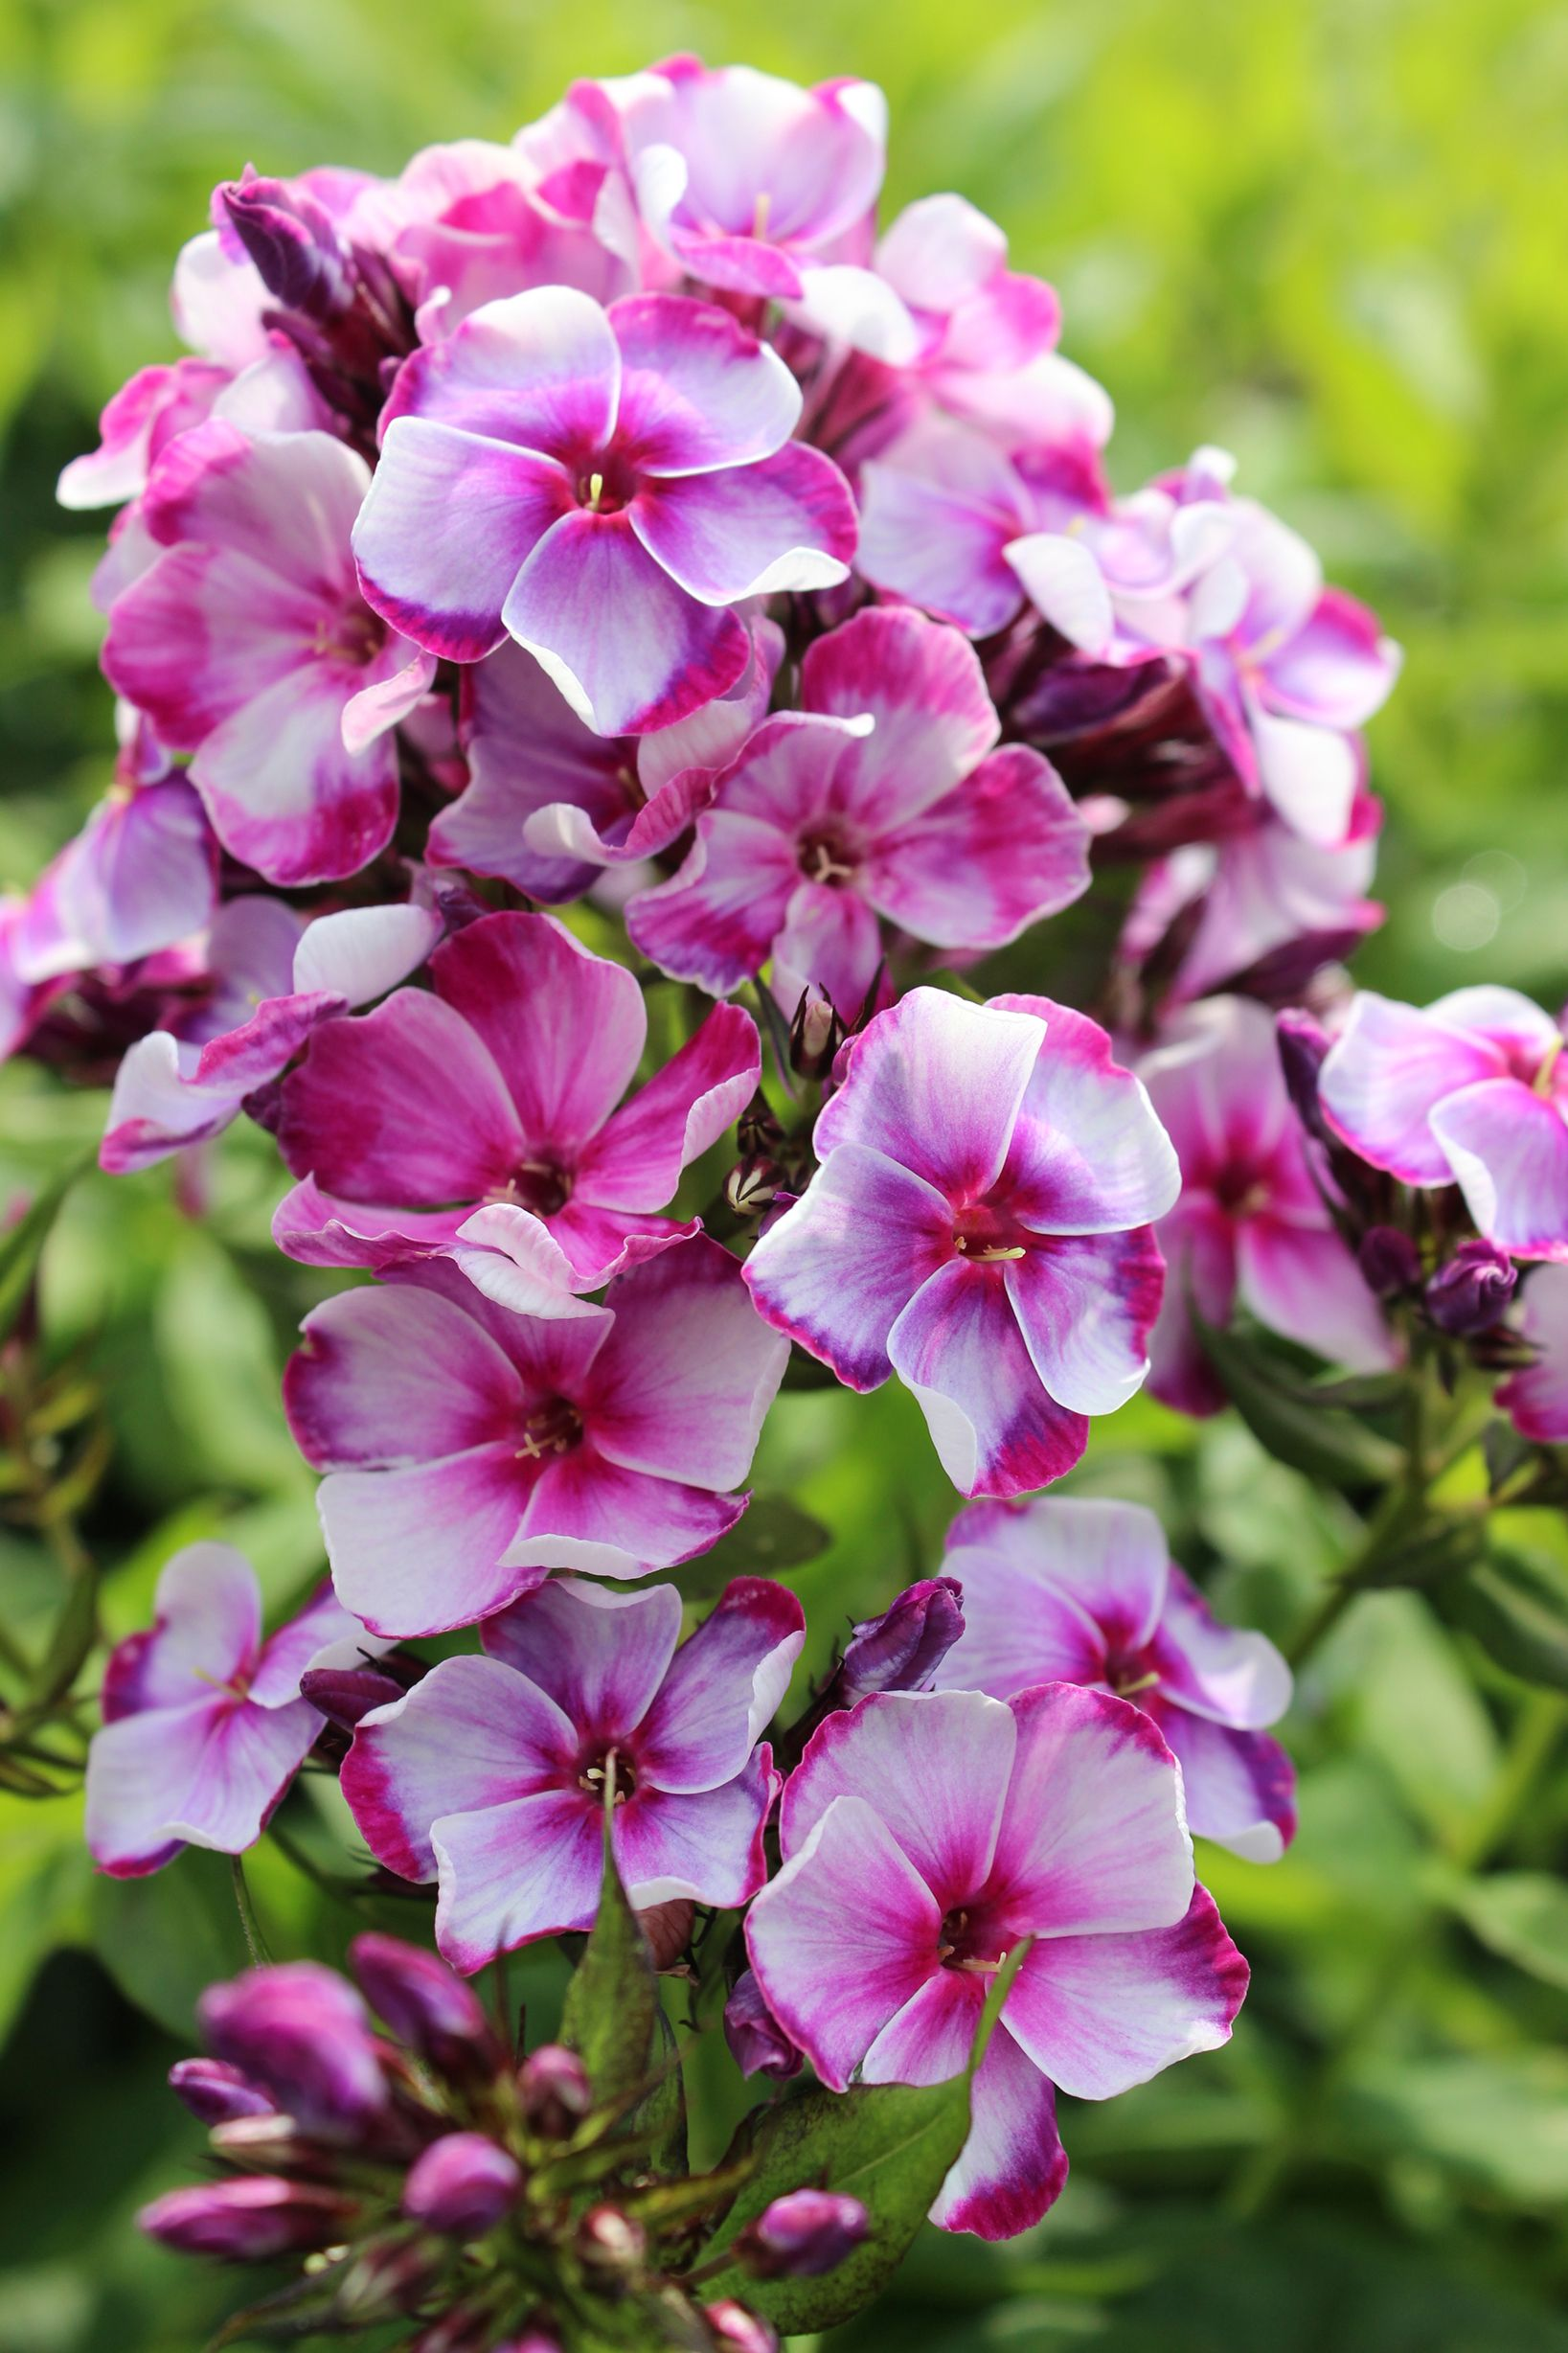 agweek to disease attacking from prevent phlox garden opinion plants tall how